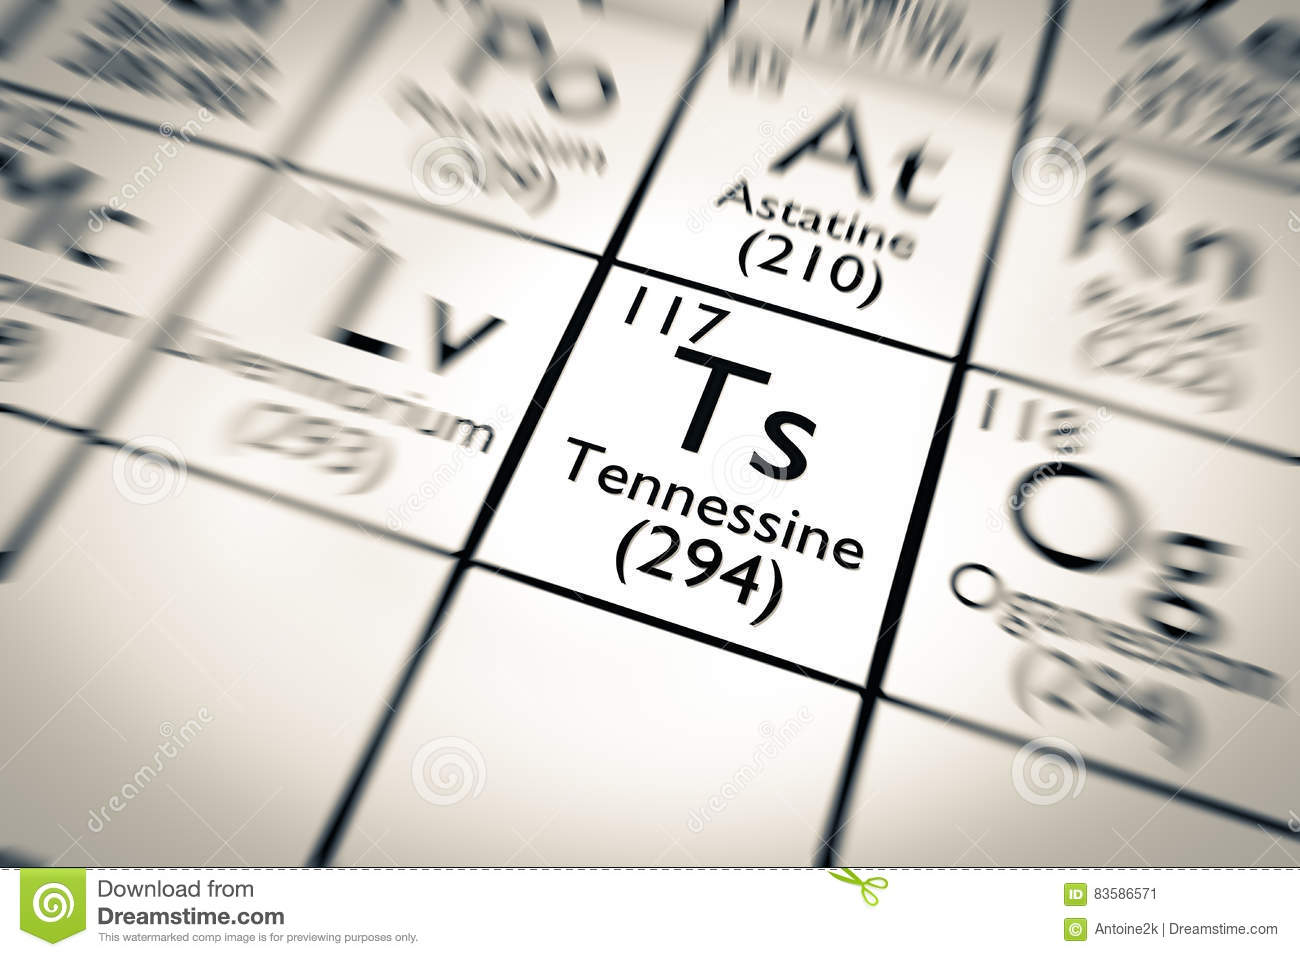 New chemical element discovered tennessine stock illustration download new chemical element discovered tennessine stock illustration illustration of chemistry energy urtaz Gallery